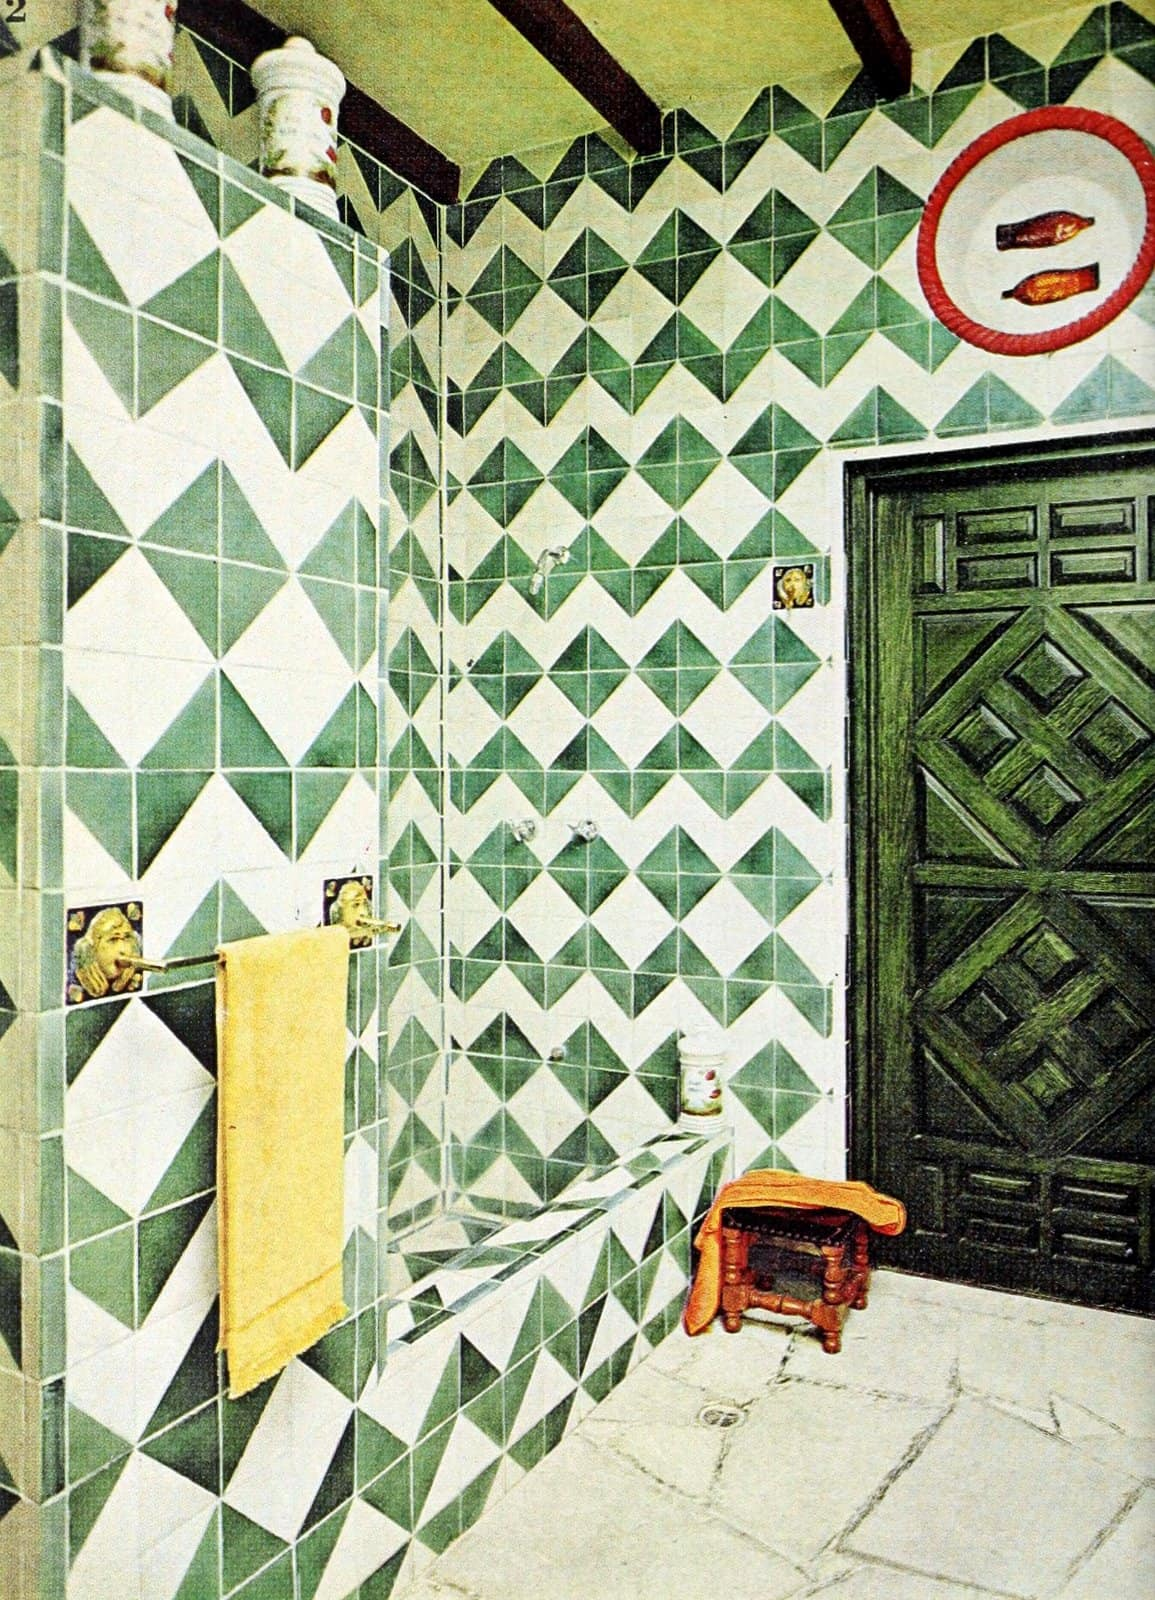 Retro Spanish-style green and white diamond-shaped tile designs from 1968